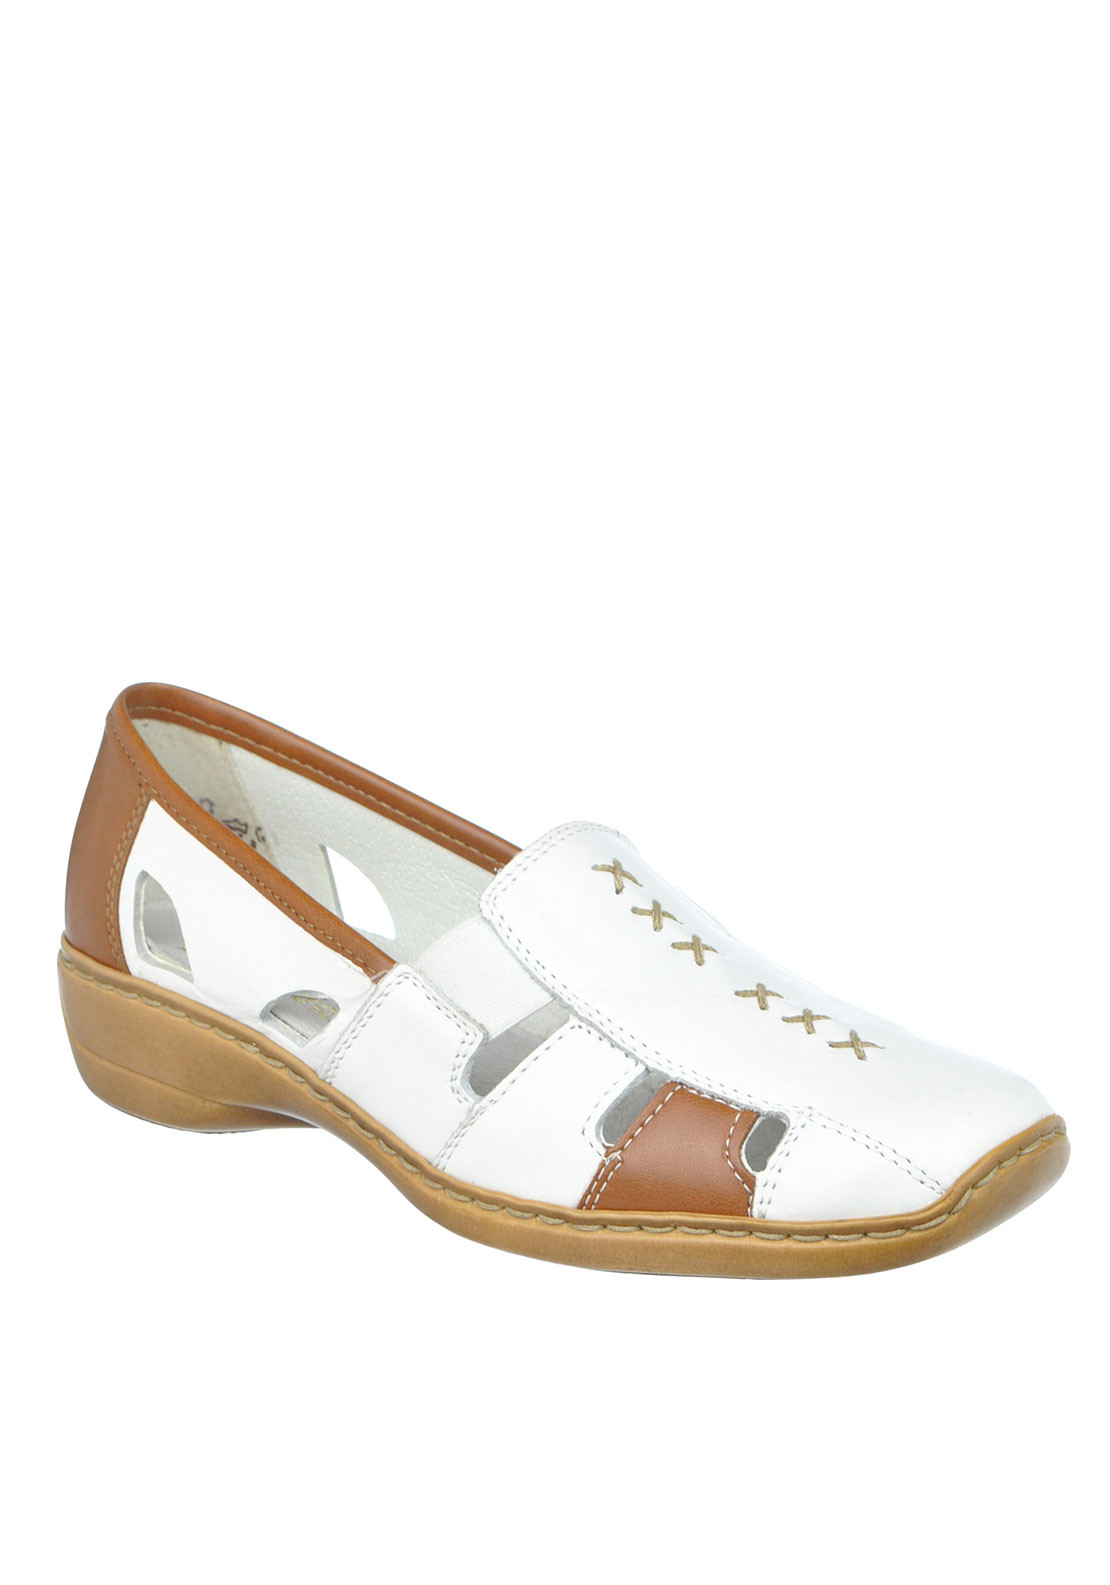 Rieker Womens Leather Cut out leather Shoe, White and Tan